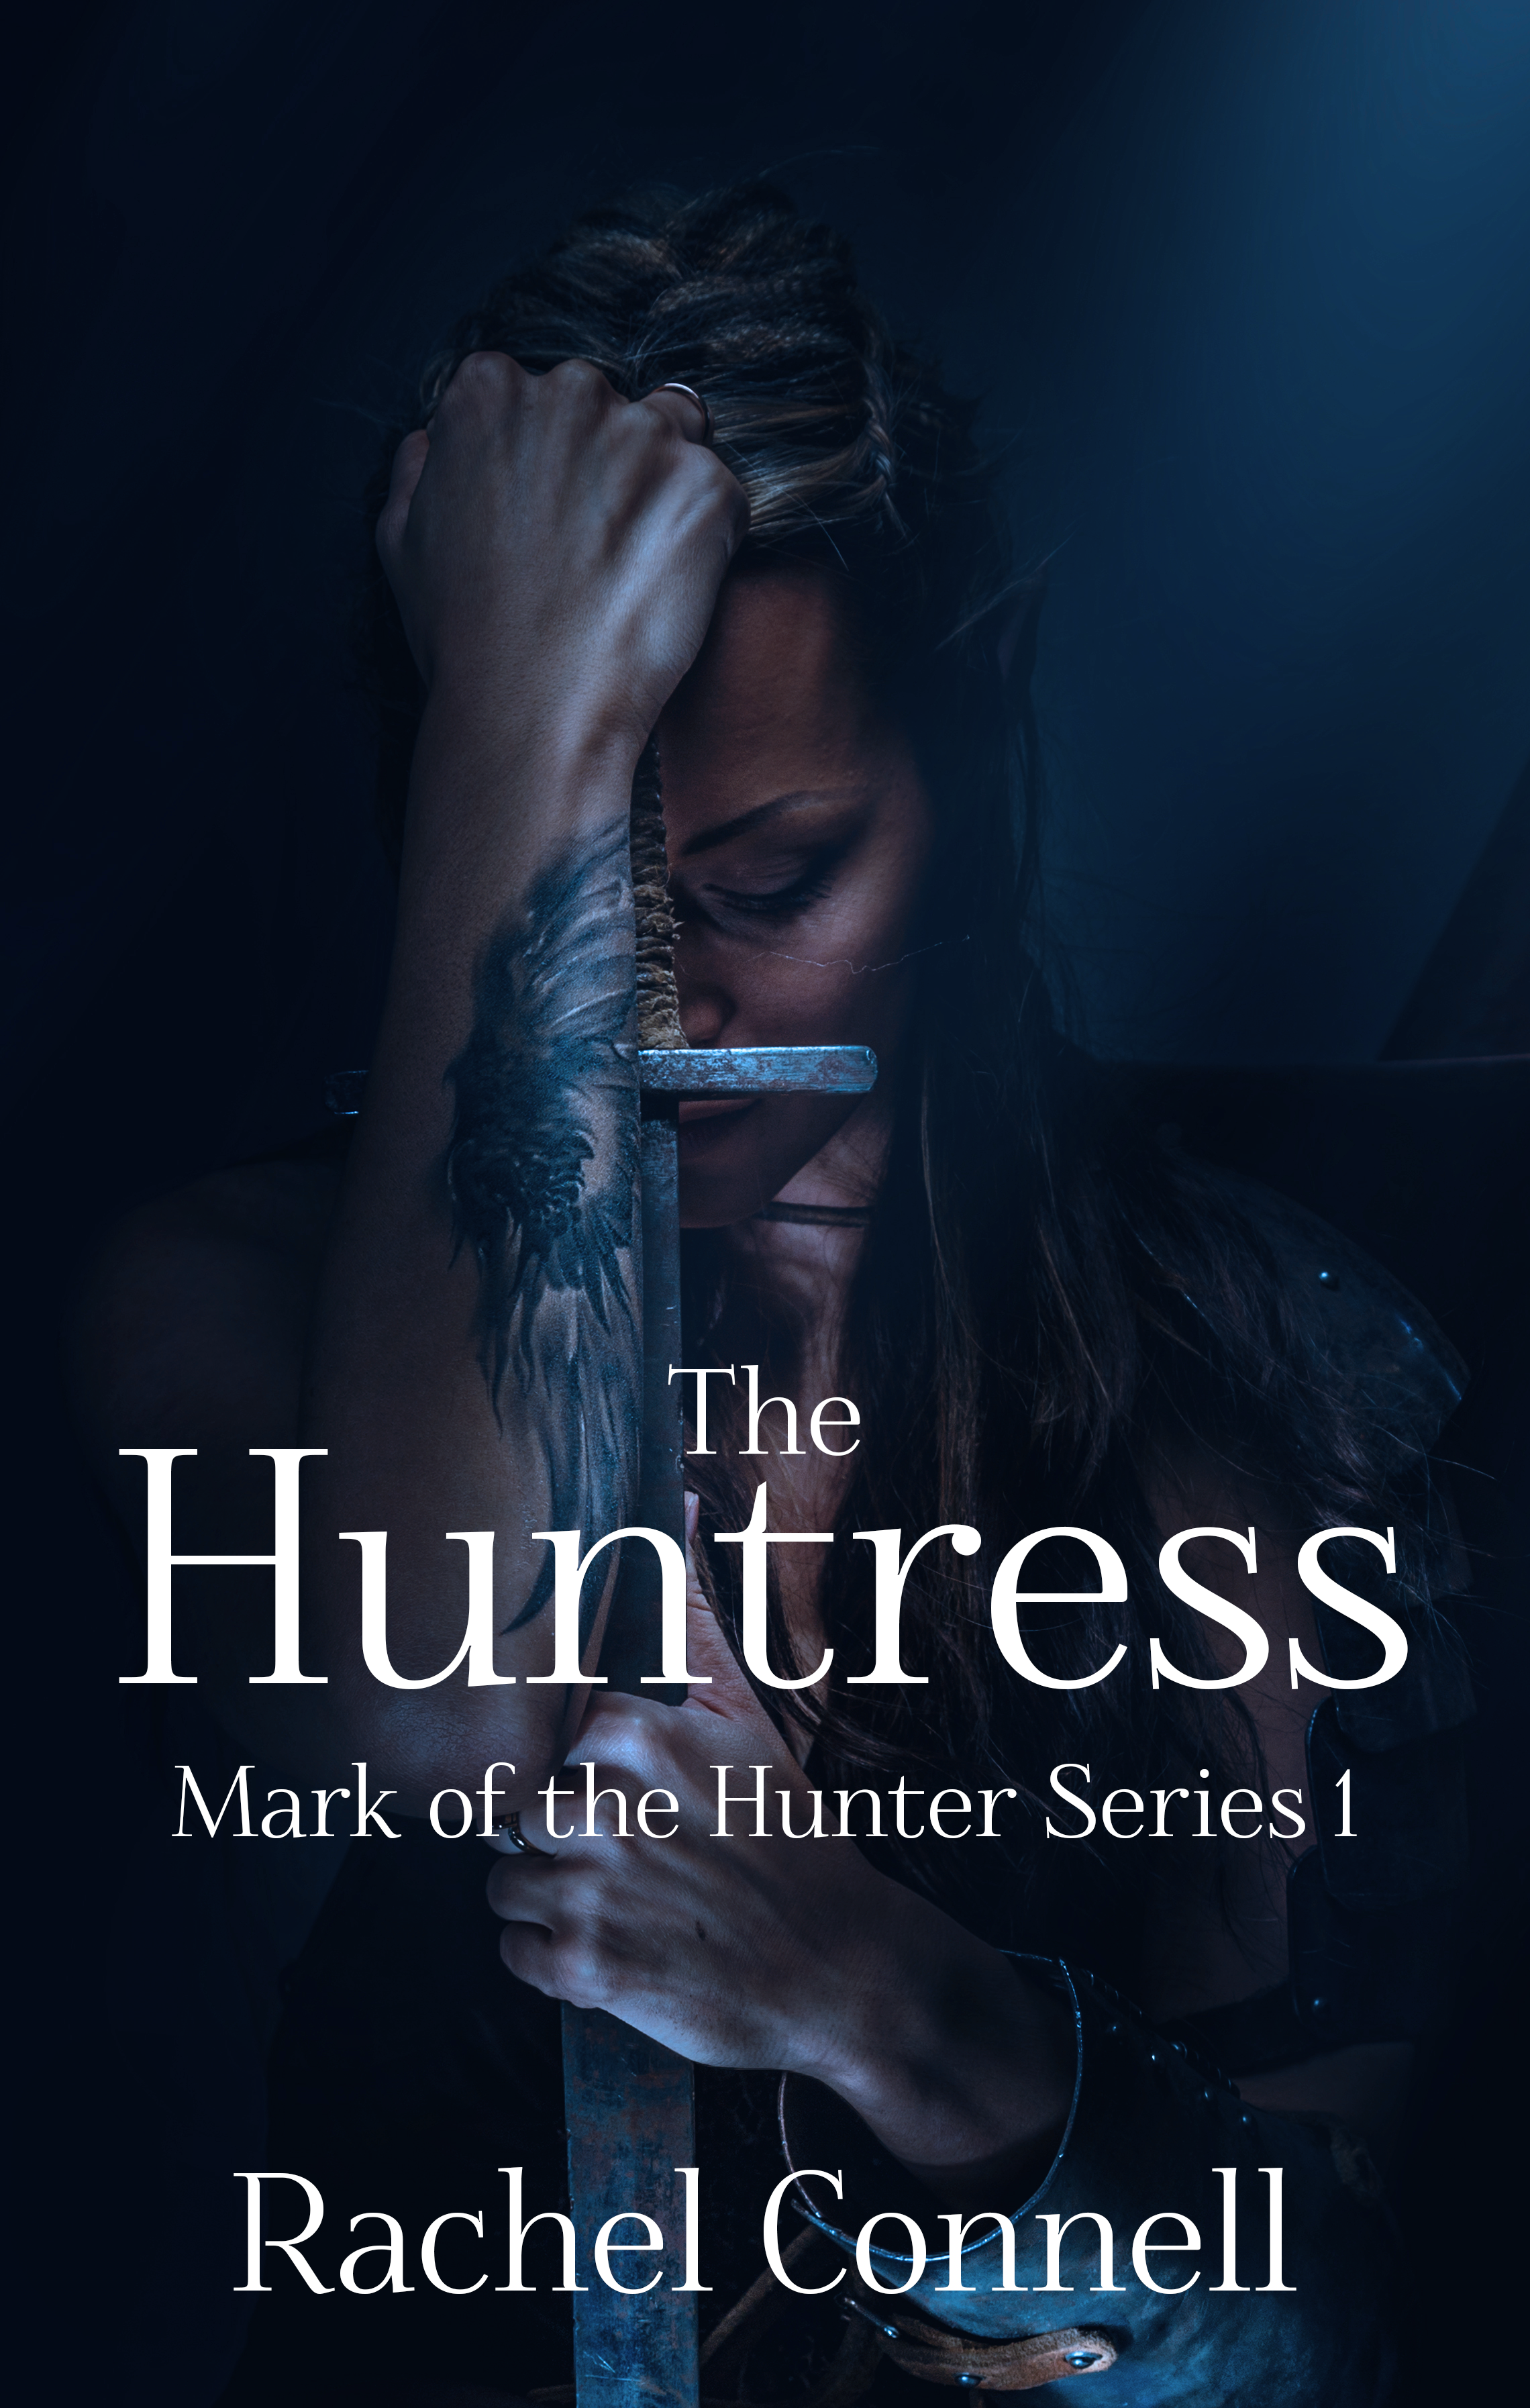 The Warrior Within-The Huntress by Rachel Connell